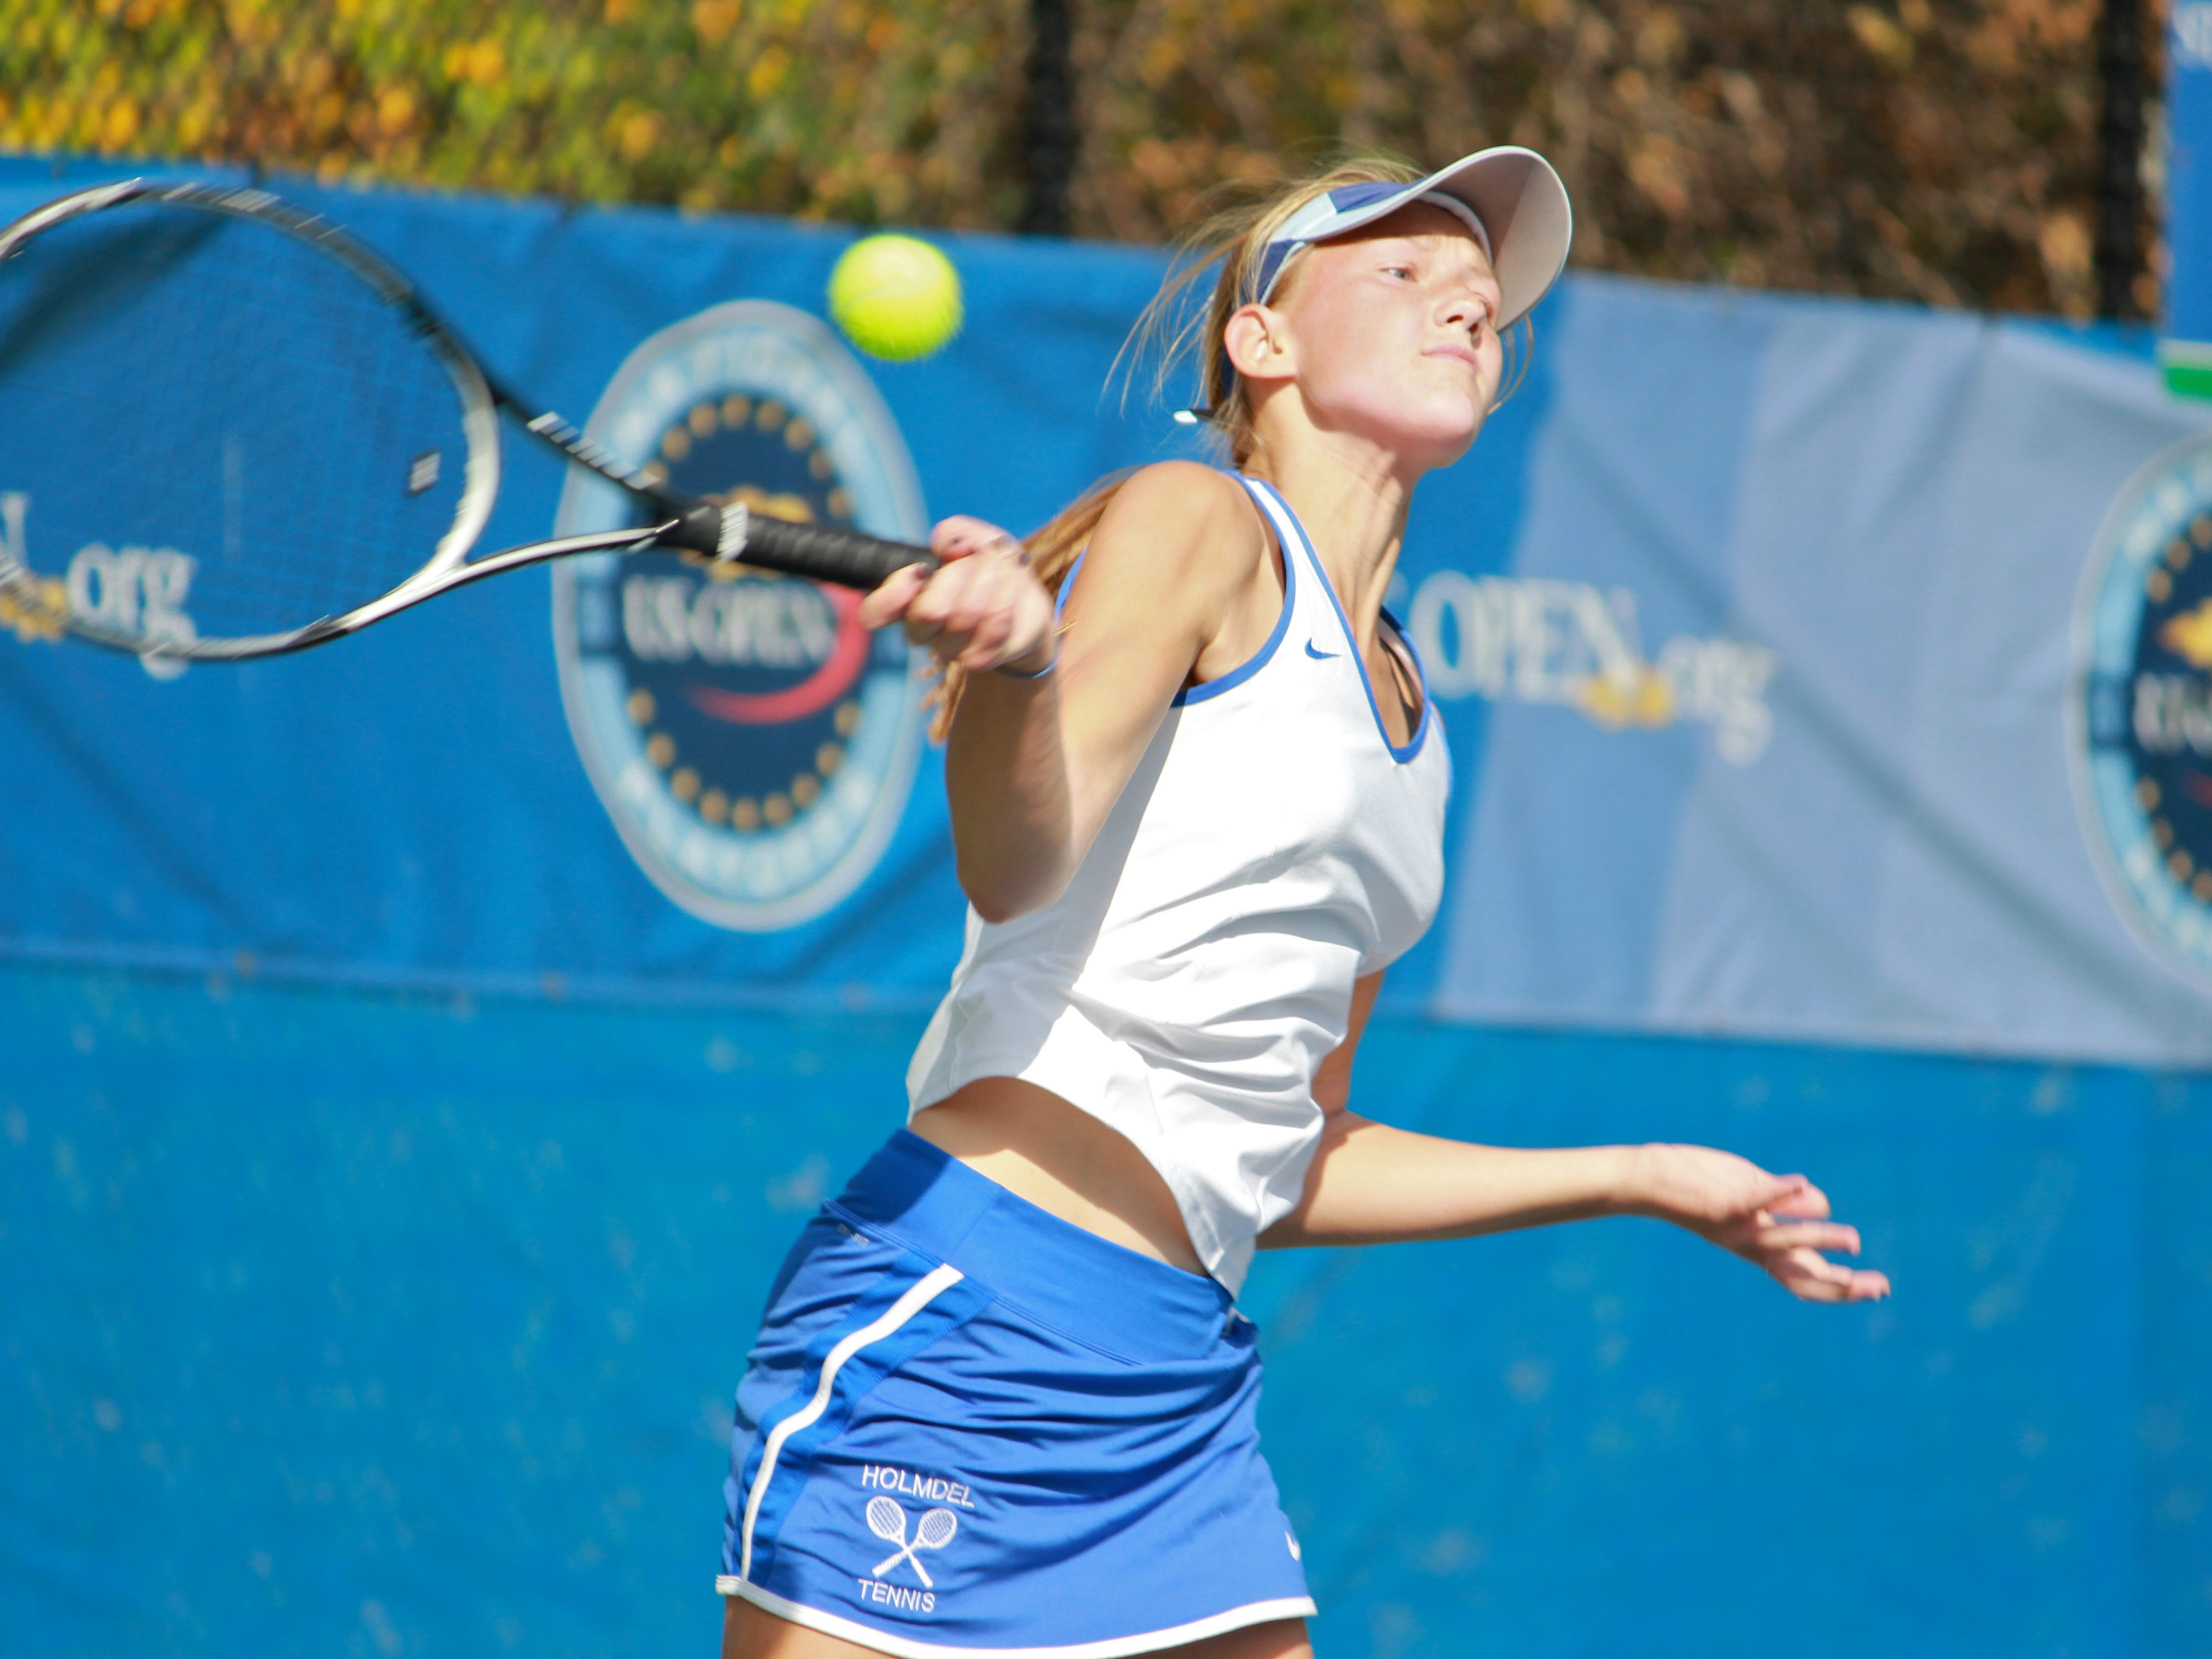 Alexandra Wojciak clinched the decidin point in a 5-0 victory over Summit as Holmdel won its first Group title in nine years on Friday.